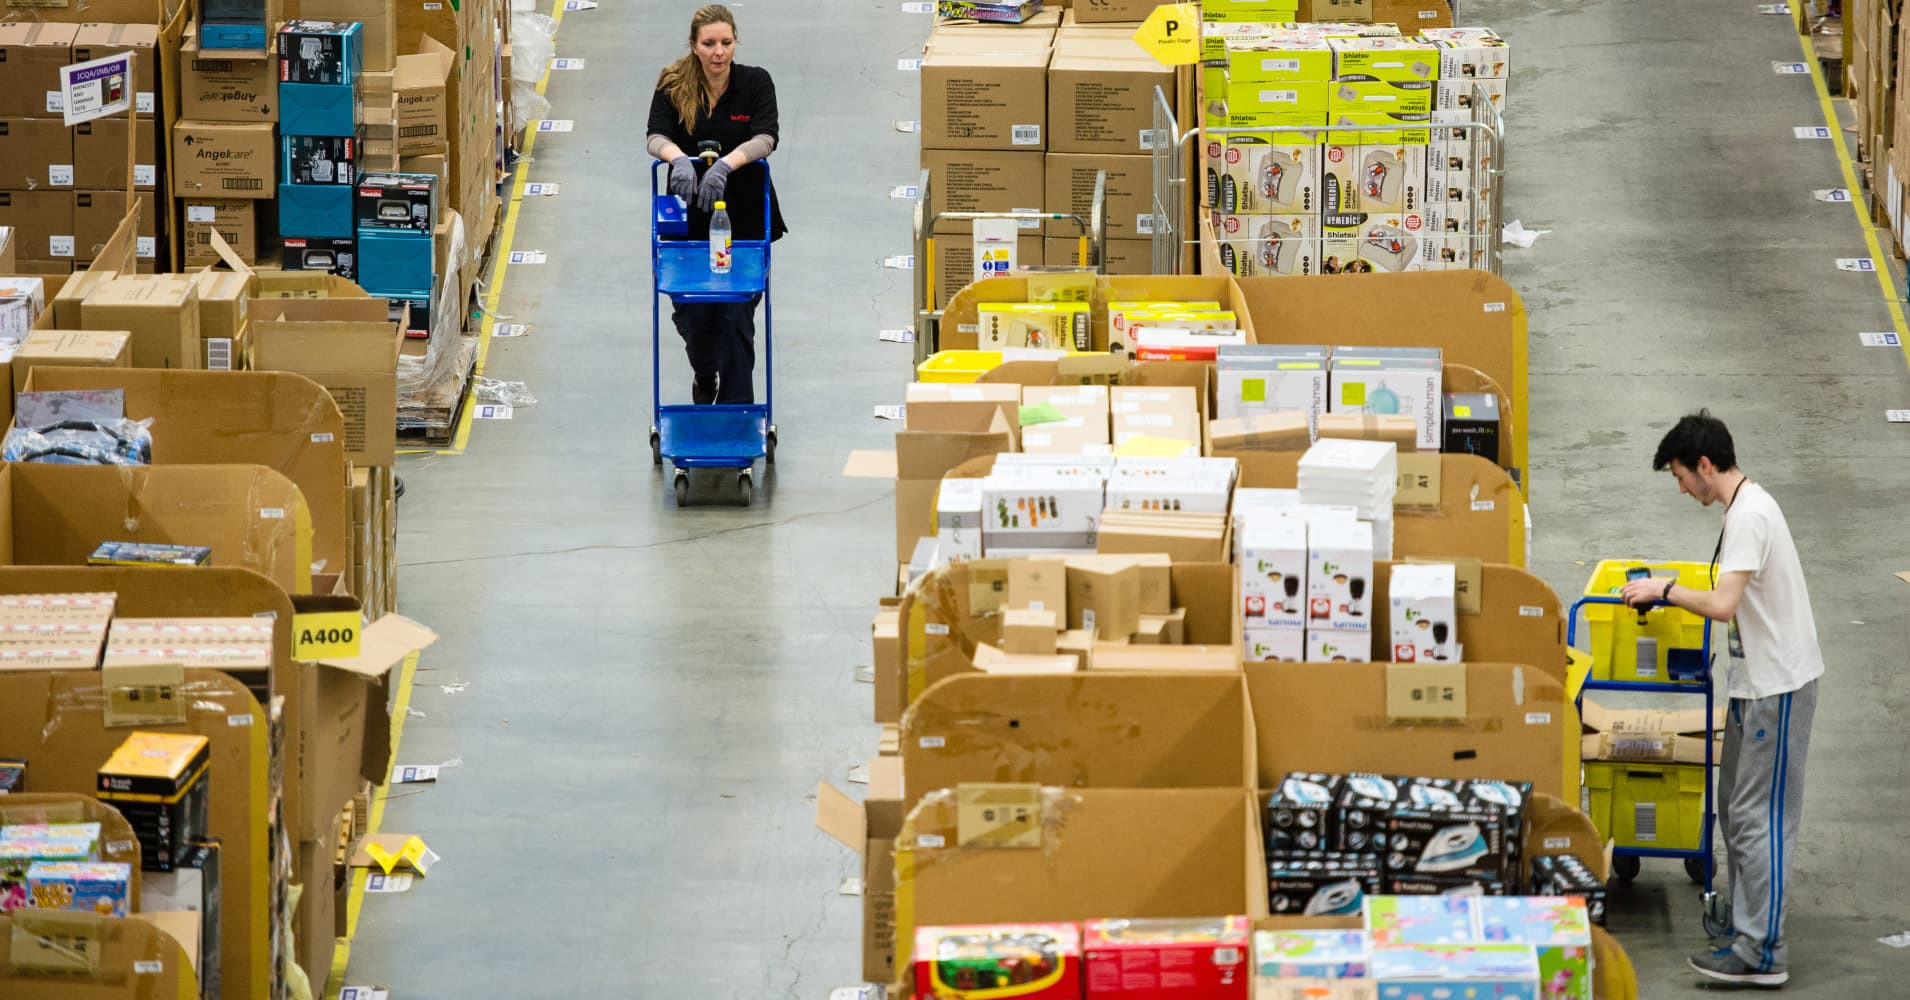 Amazon's Prime customers are spending more this holiday season, as retailers scramble to keep up online